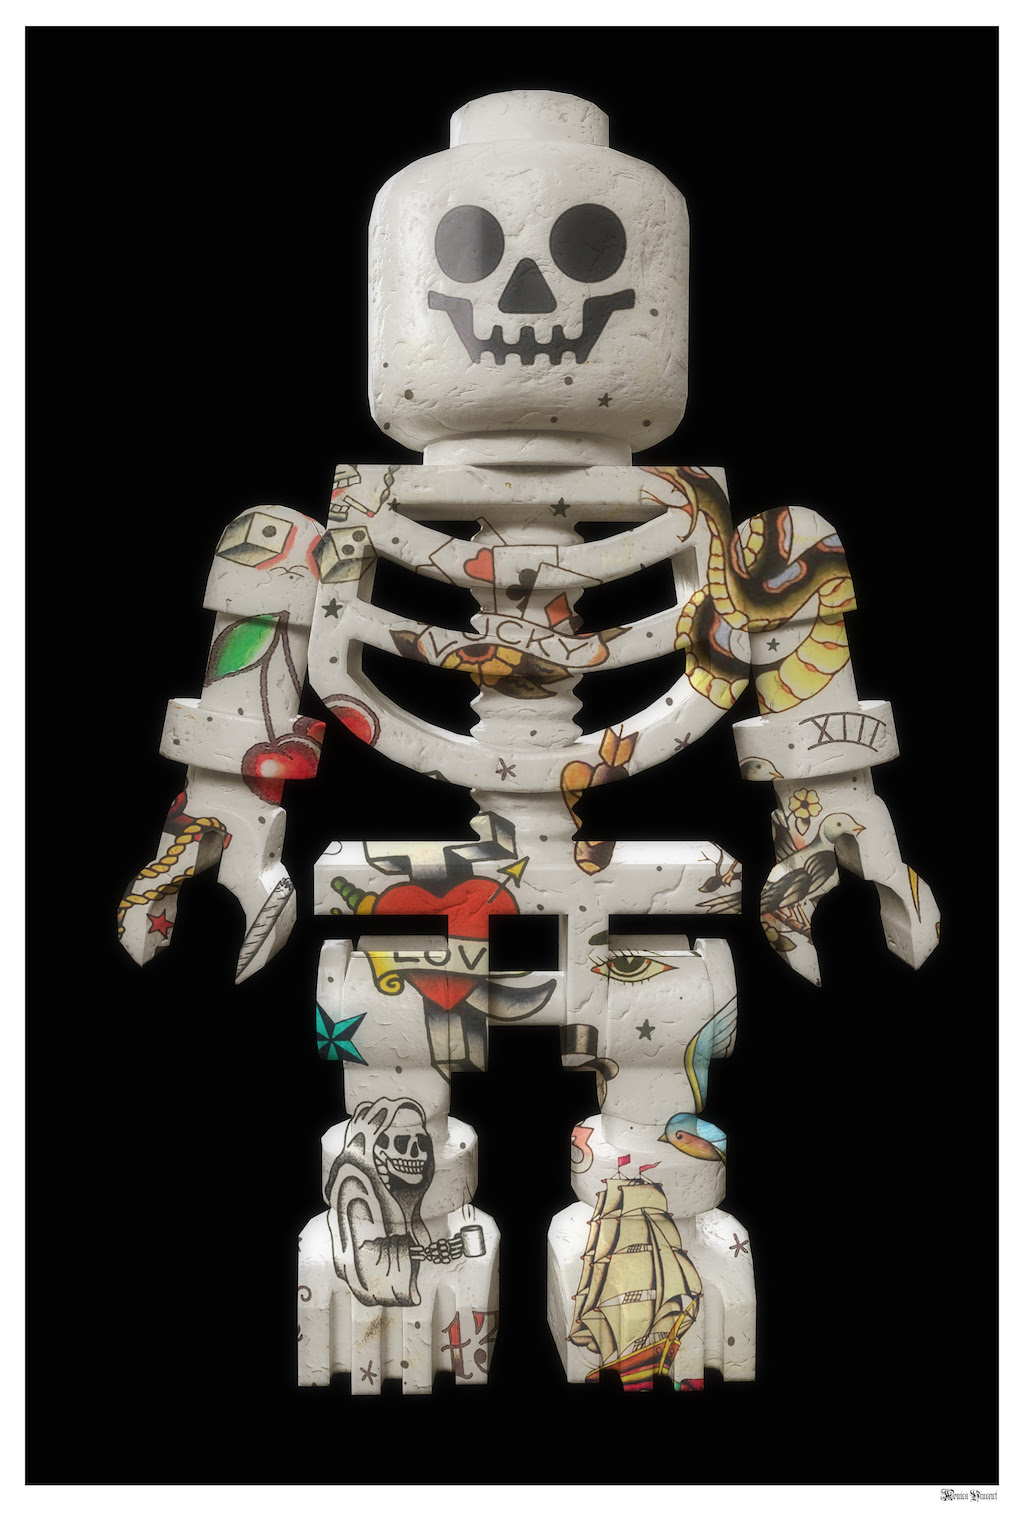 Lego Skeleton (Black Background) - Small by Monica Vincent